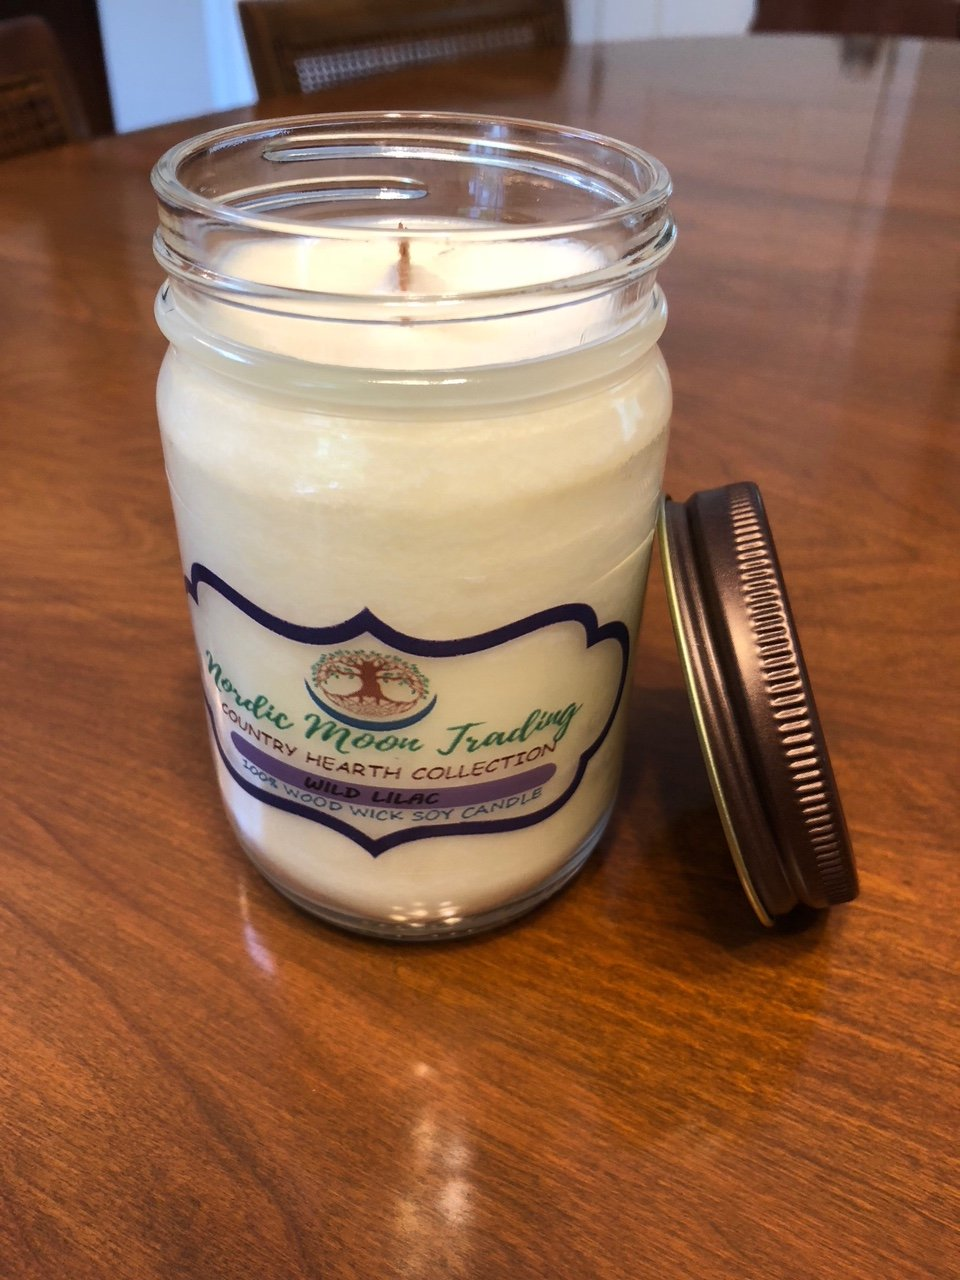 Nordic Moon Trading 100% Natural Soy Wax, Wood Wick Scented Candle 12 oz Mason Jar - Wild Lilac. Made in USA by Family Owned Business. 100 Hours of Burn Time. Clean Burning, No Black Soot. by Nordic Moon Trading (Image #5)